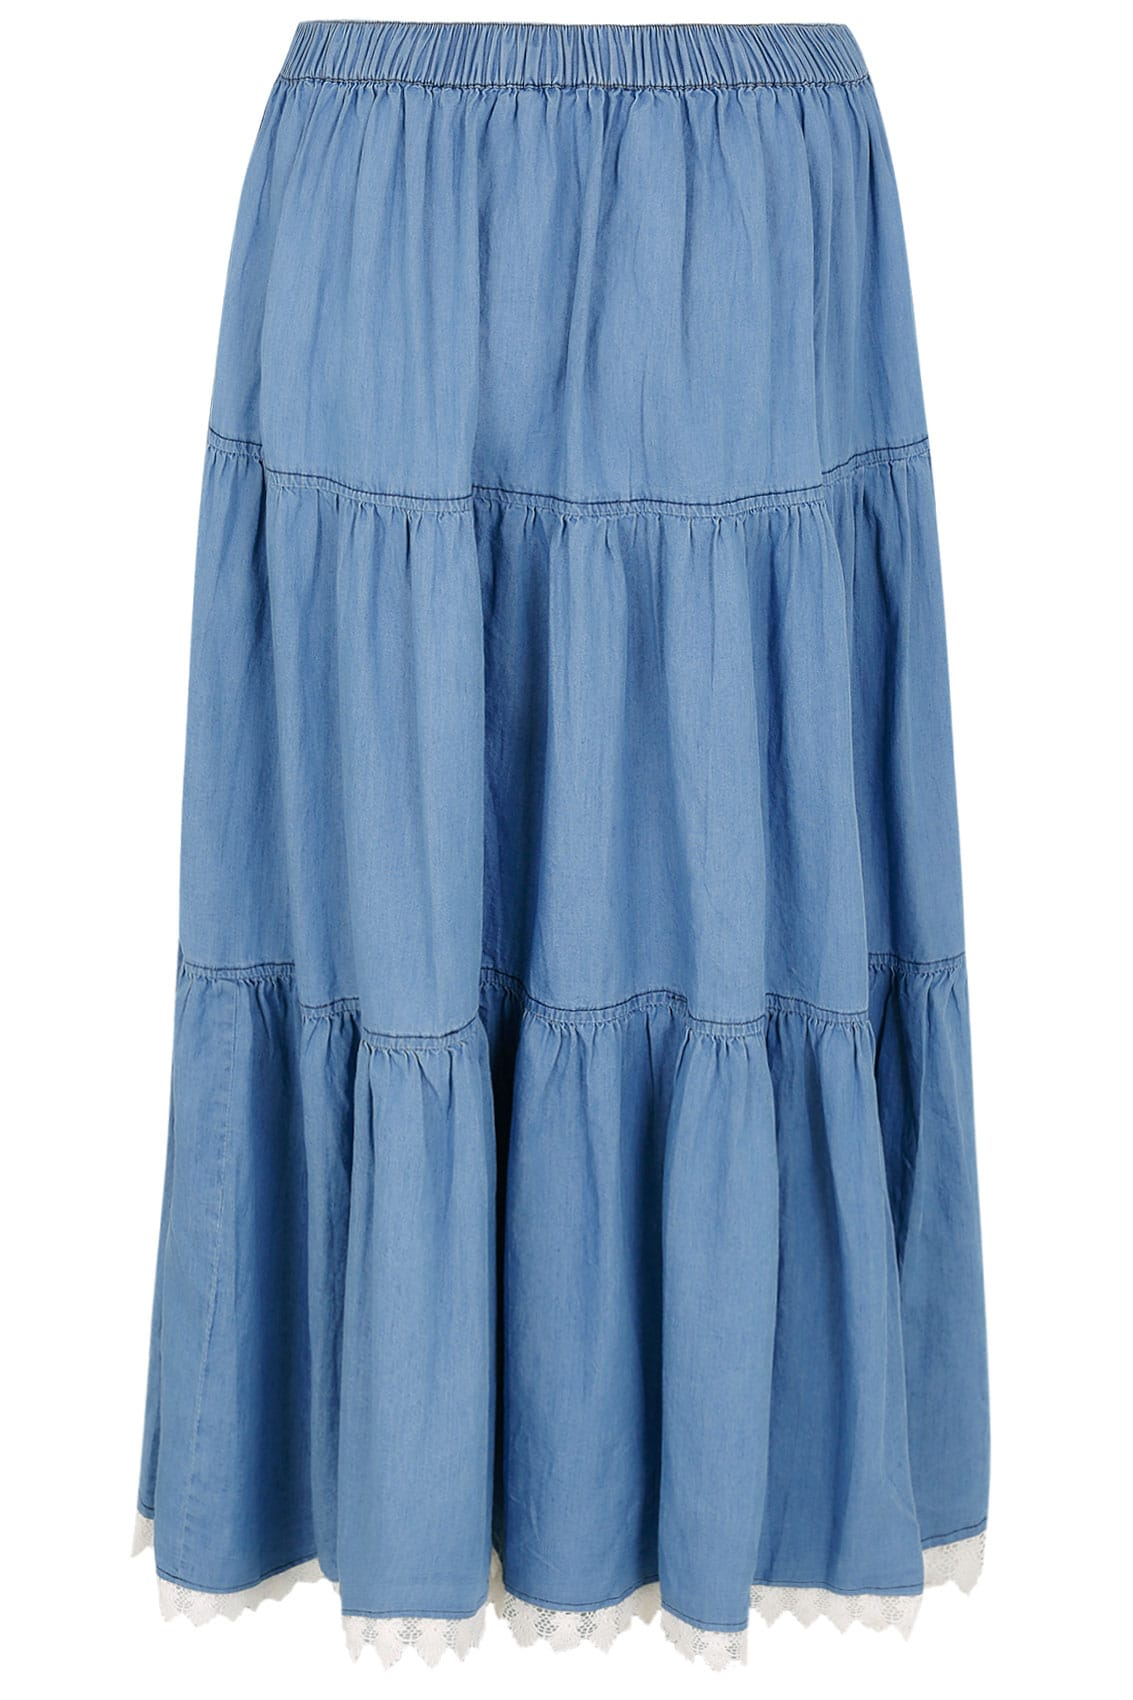 denim blue tiered maxi skirt with lace trim hem plus size 16 to 36. Black Bedroom Furniture Sets. Home Design Ideas